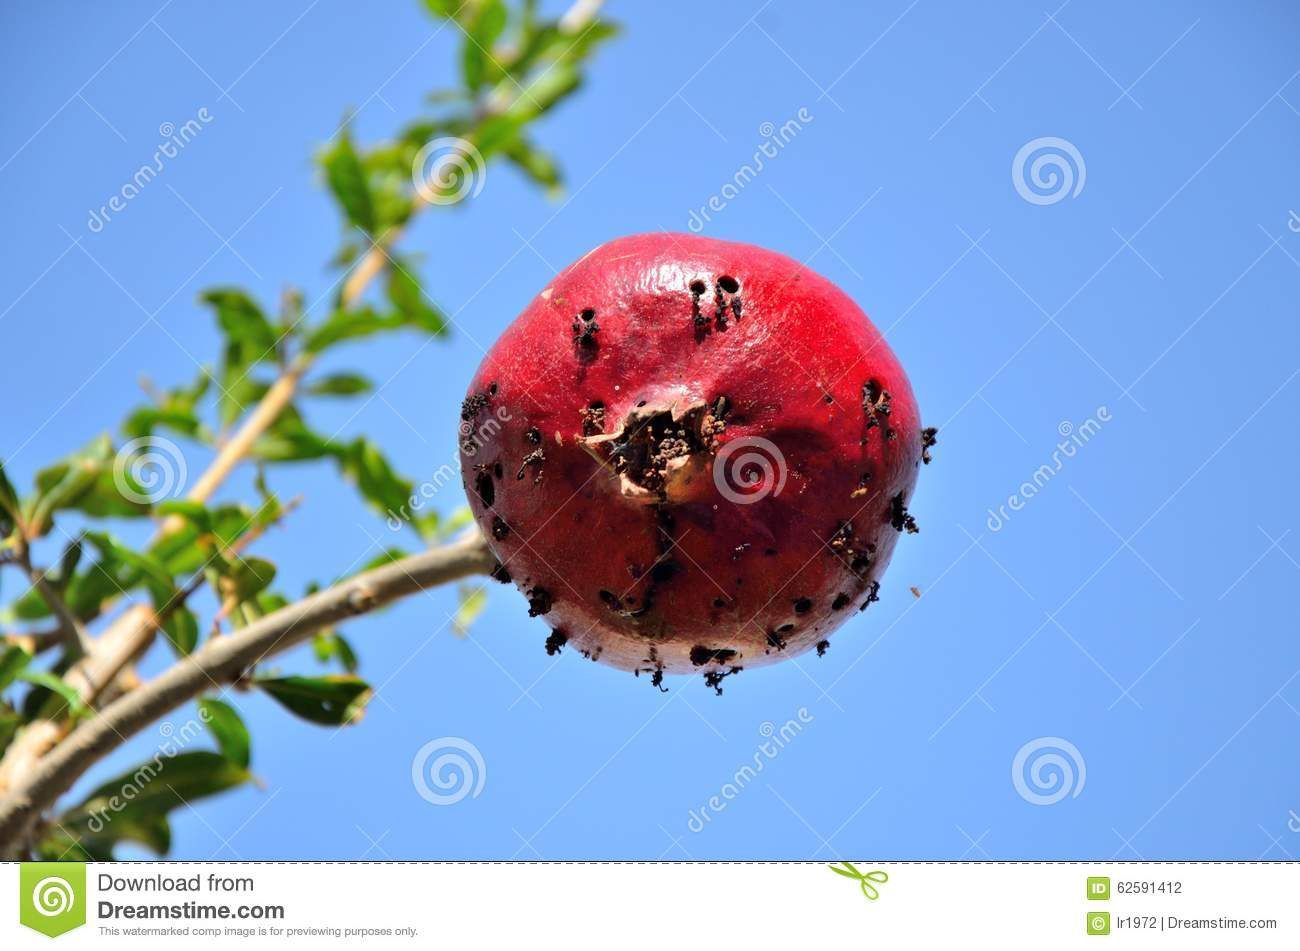 Pomegranate Infected By Mediterranean Fruit Fly Stock Photo.